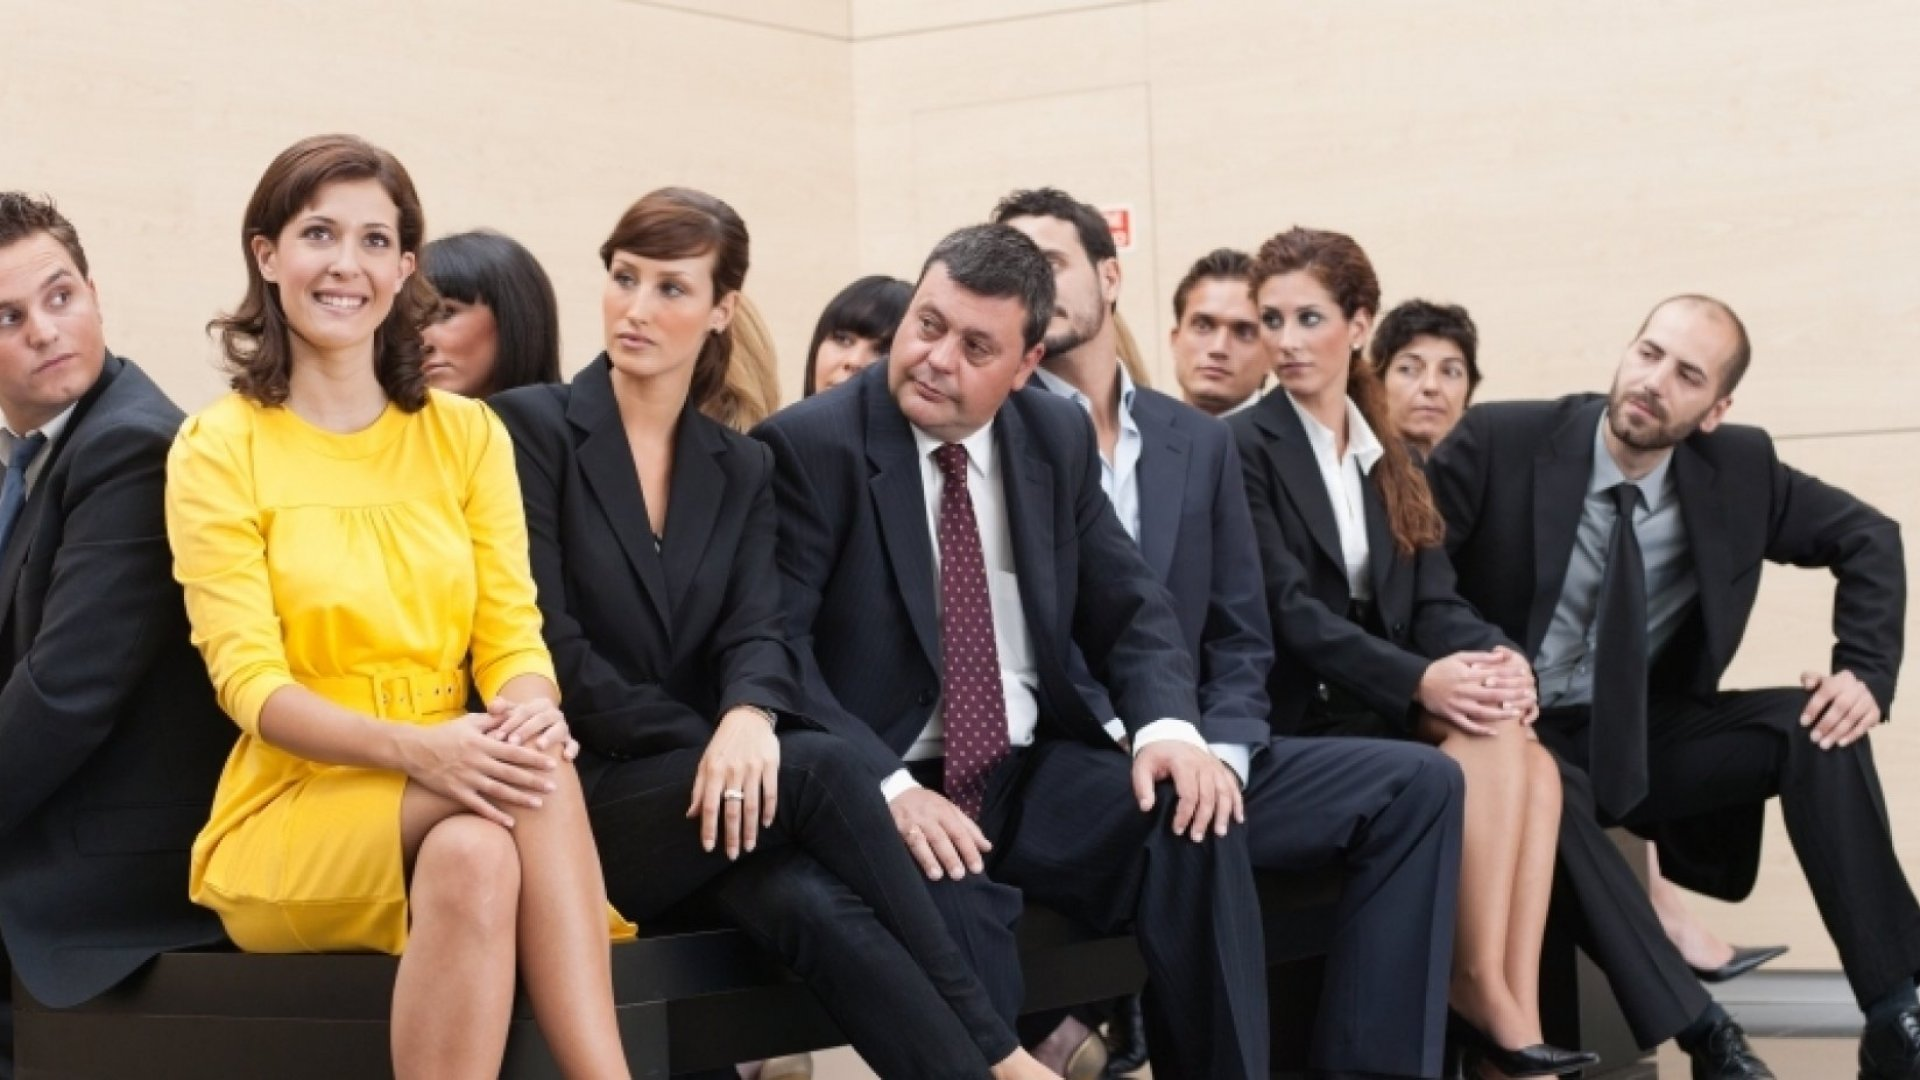 11 Qualities Shared by Superstar Employees